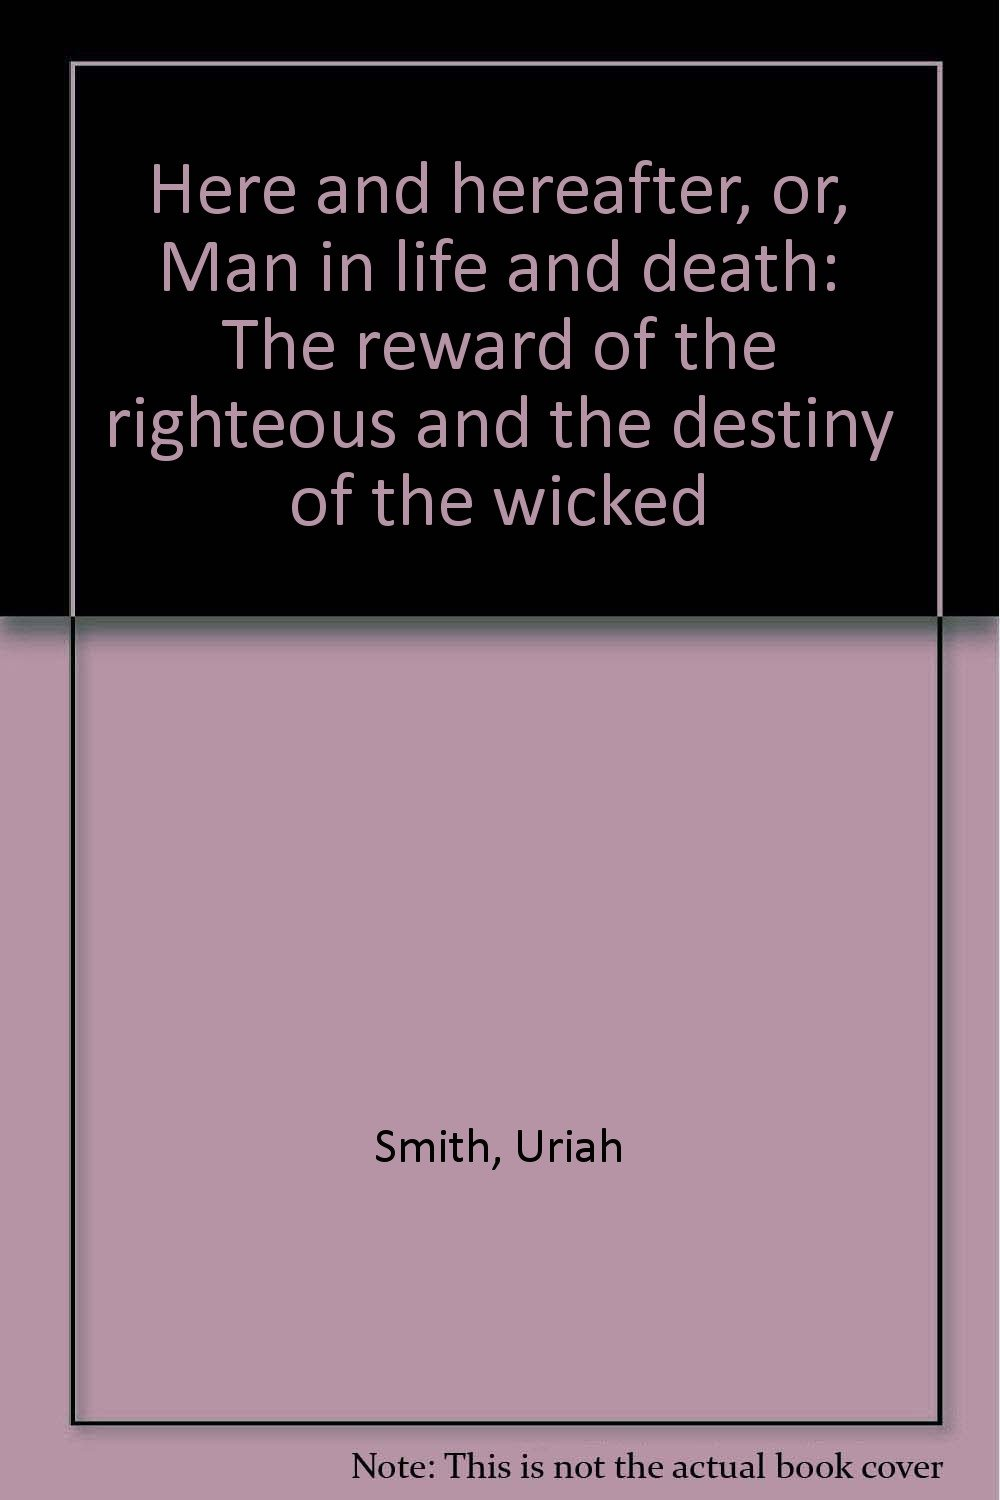 Here and hereafter, or, Man in life and death: The reward of the righteous and the destiny of the wicked ebook